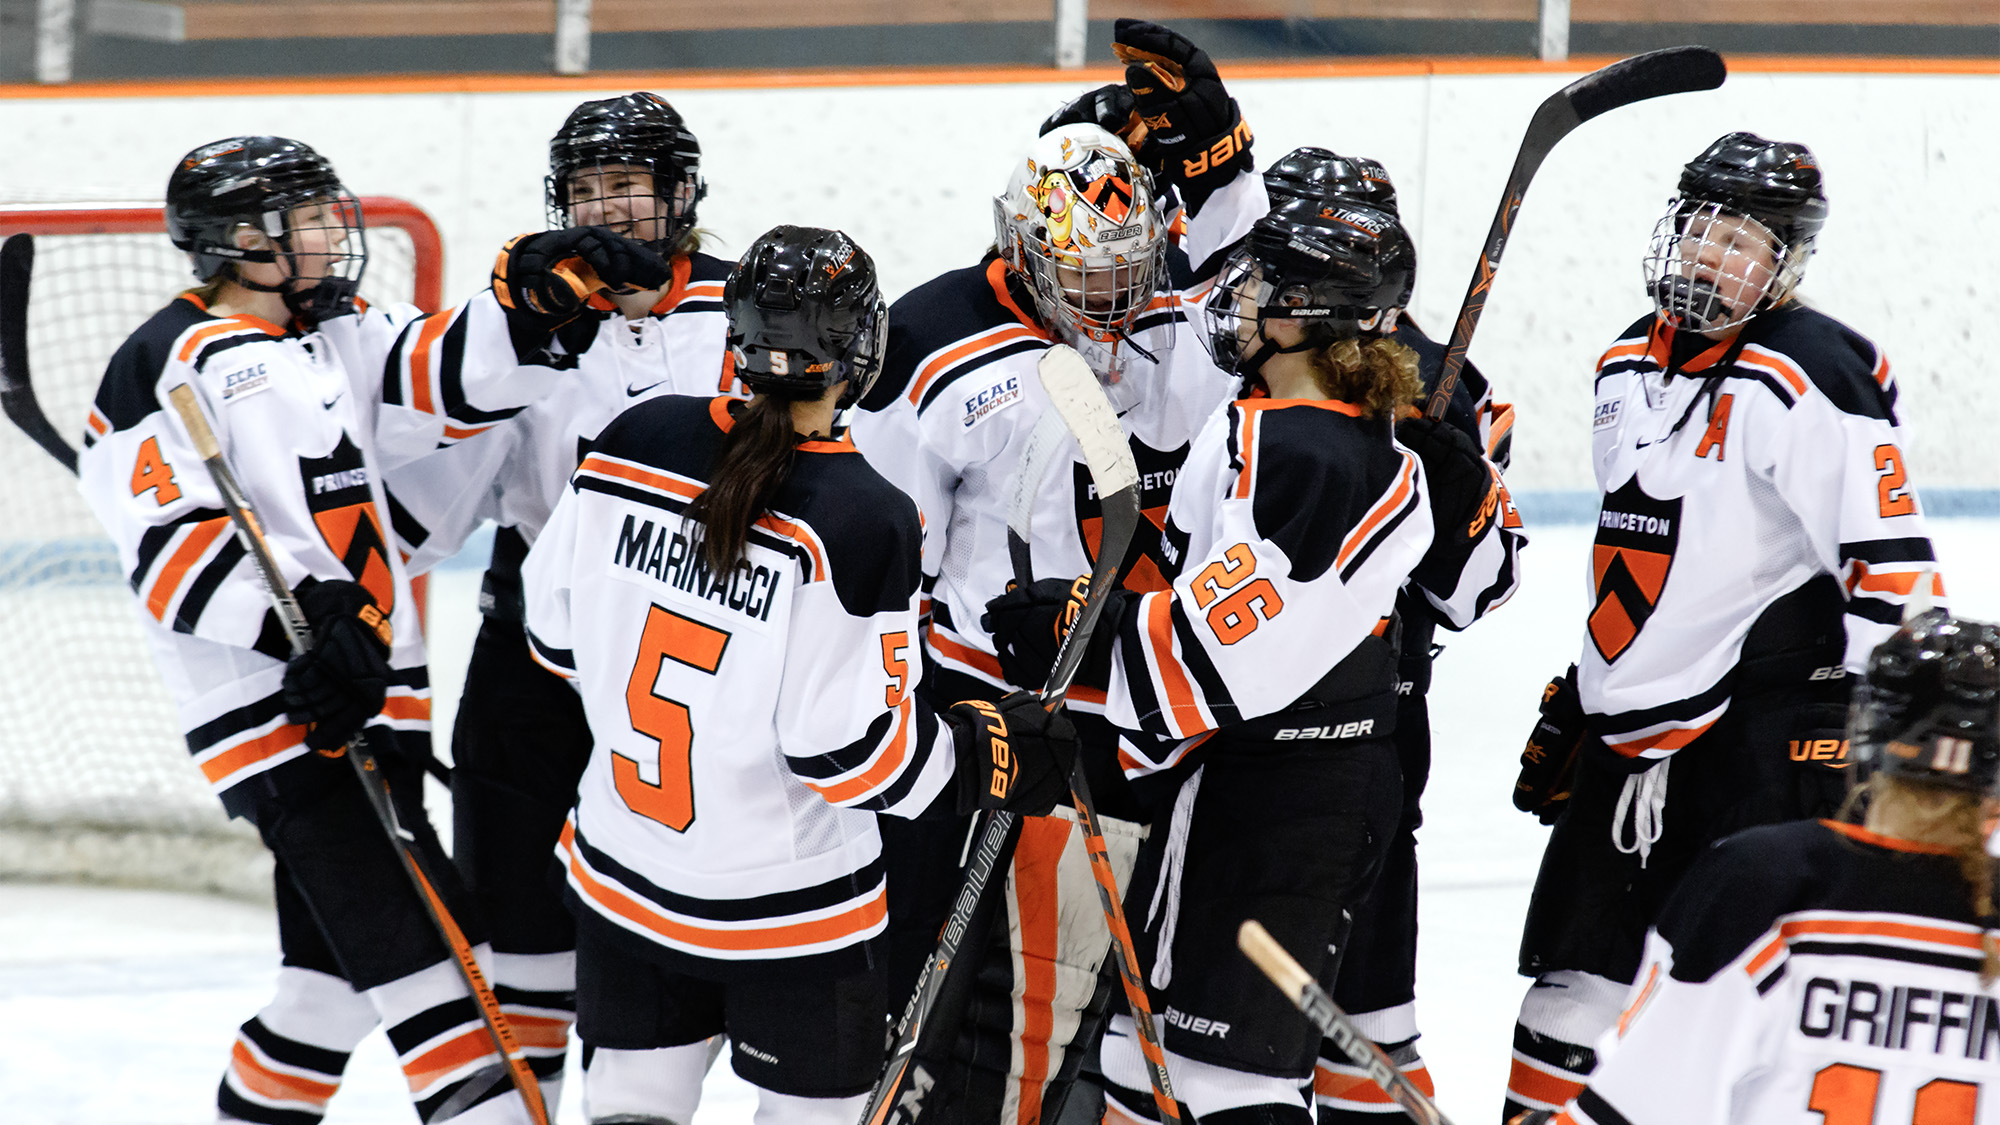 Tigers Look To Make A Push In League Standings This Weekend